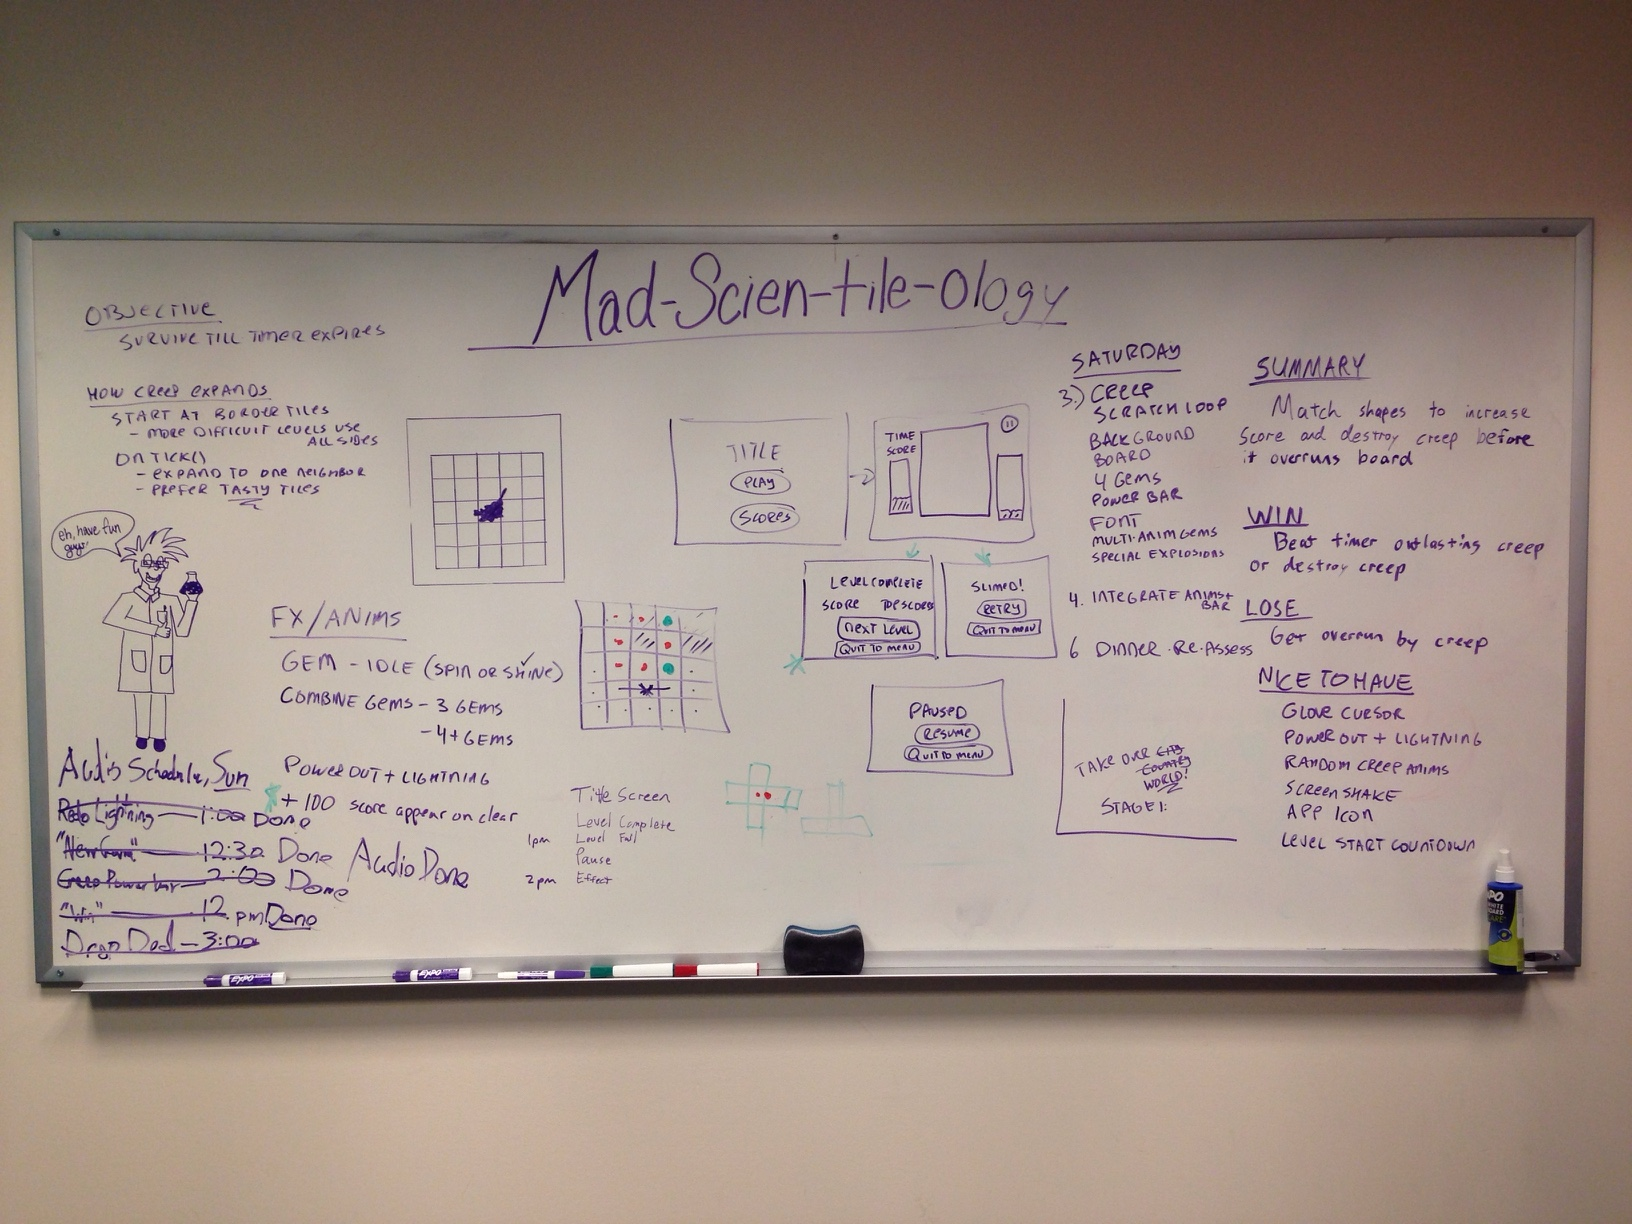 Whiteboard containing both game design and project management